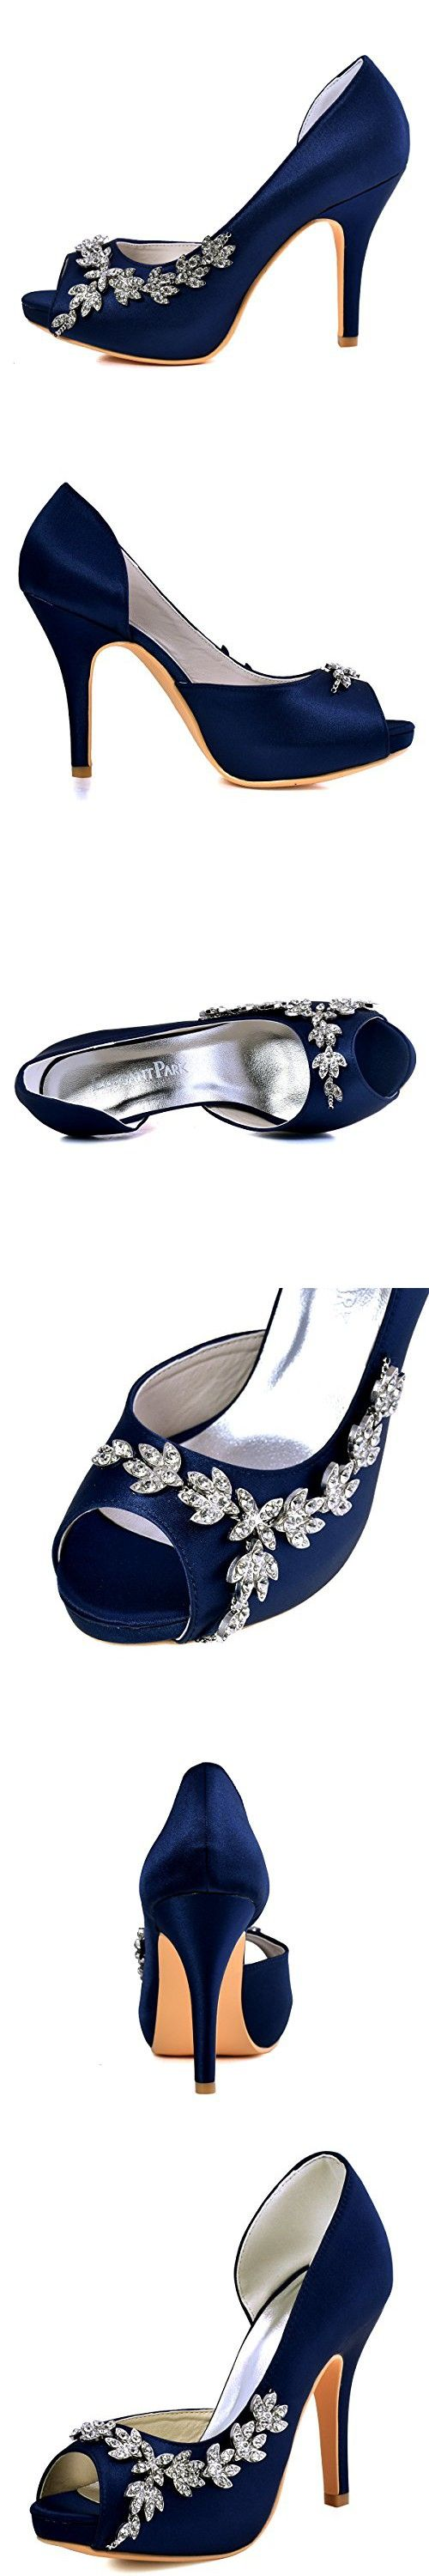 ElegantPark HP1560IAC Women's Peep Toe Platform High Heel Rhinestones Satin Wedding Party Dress Shoes Navy Blue US 8